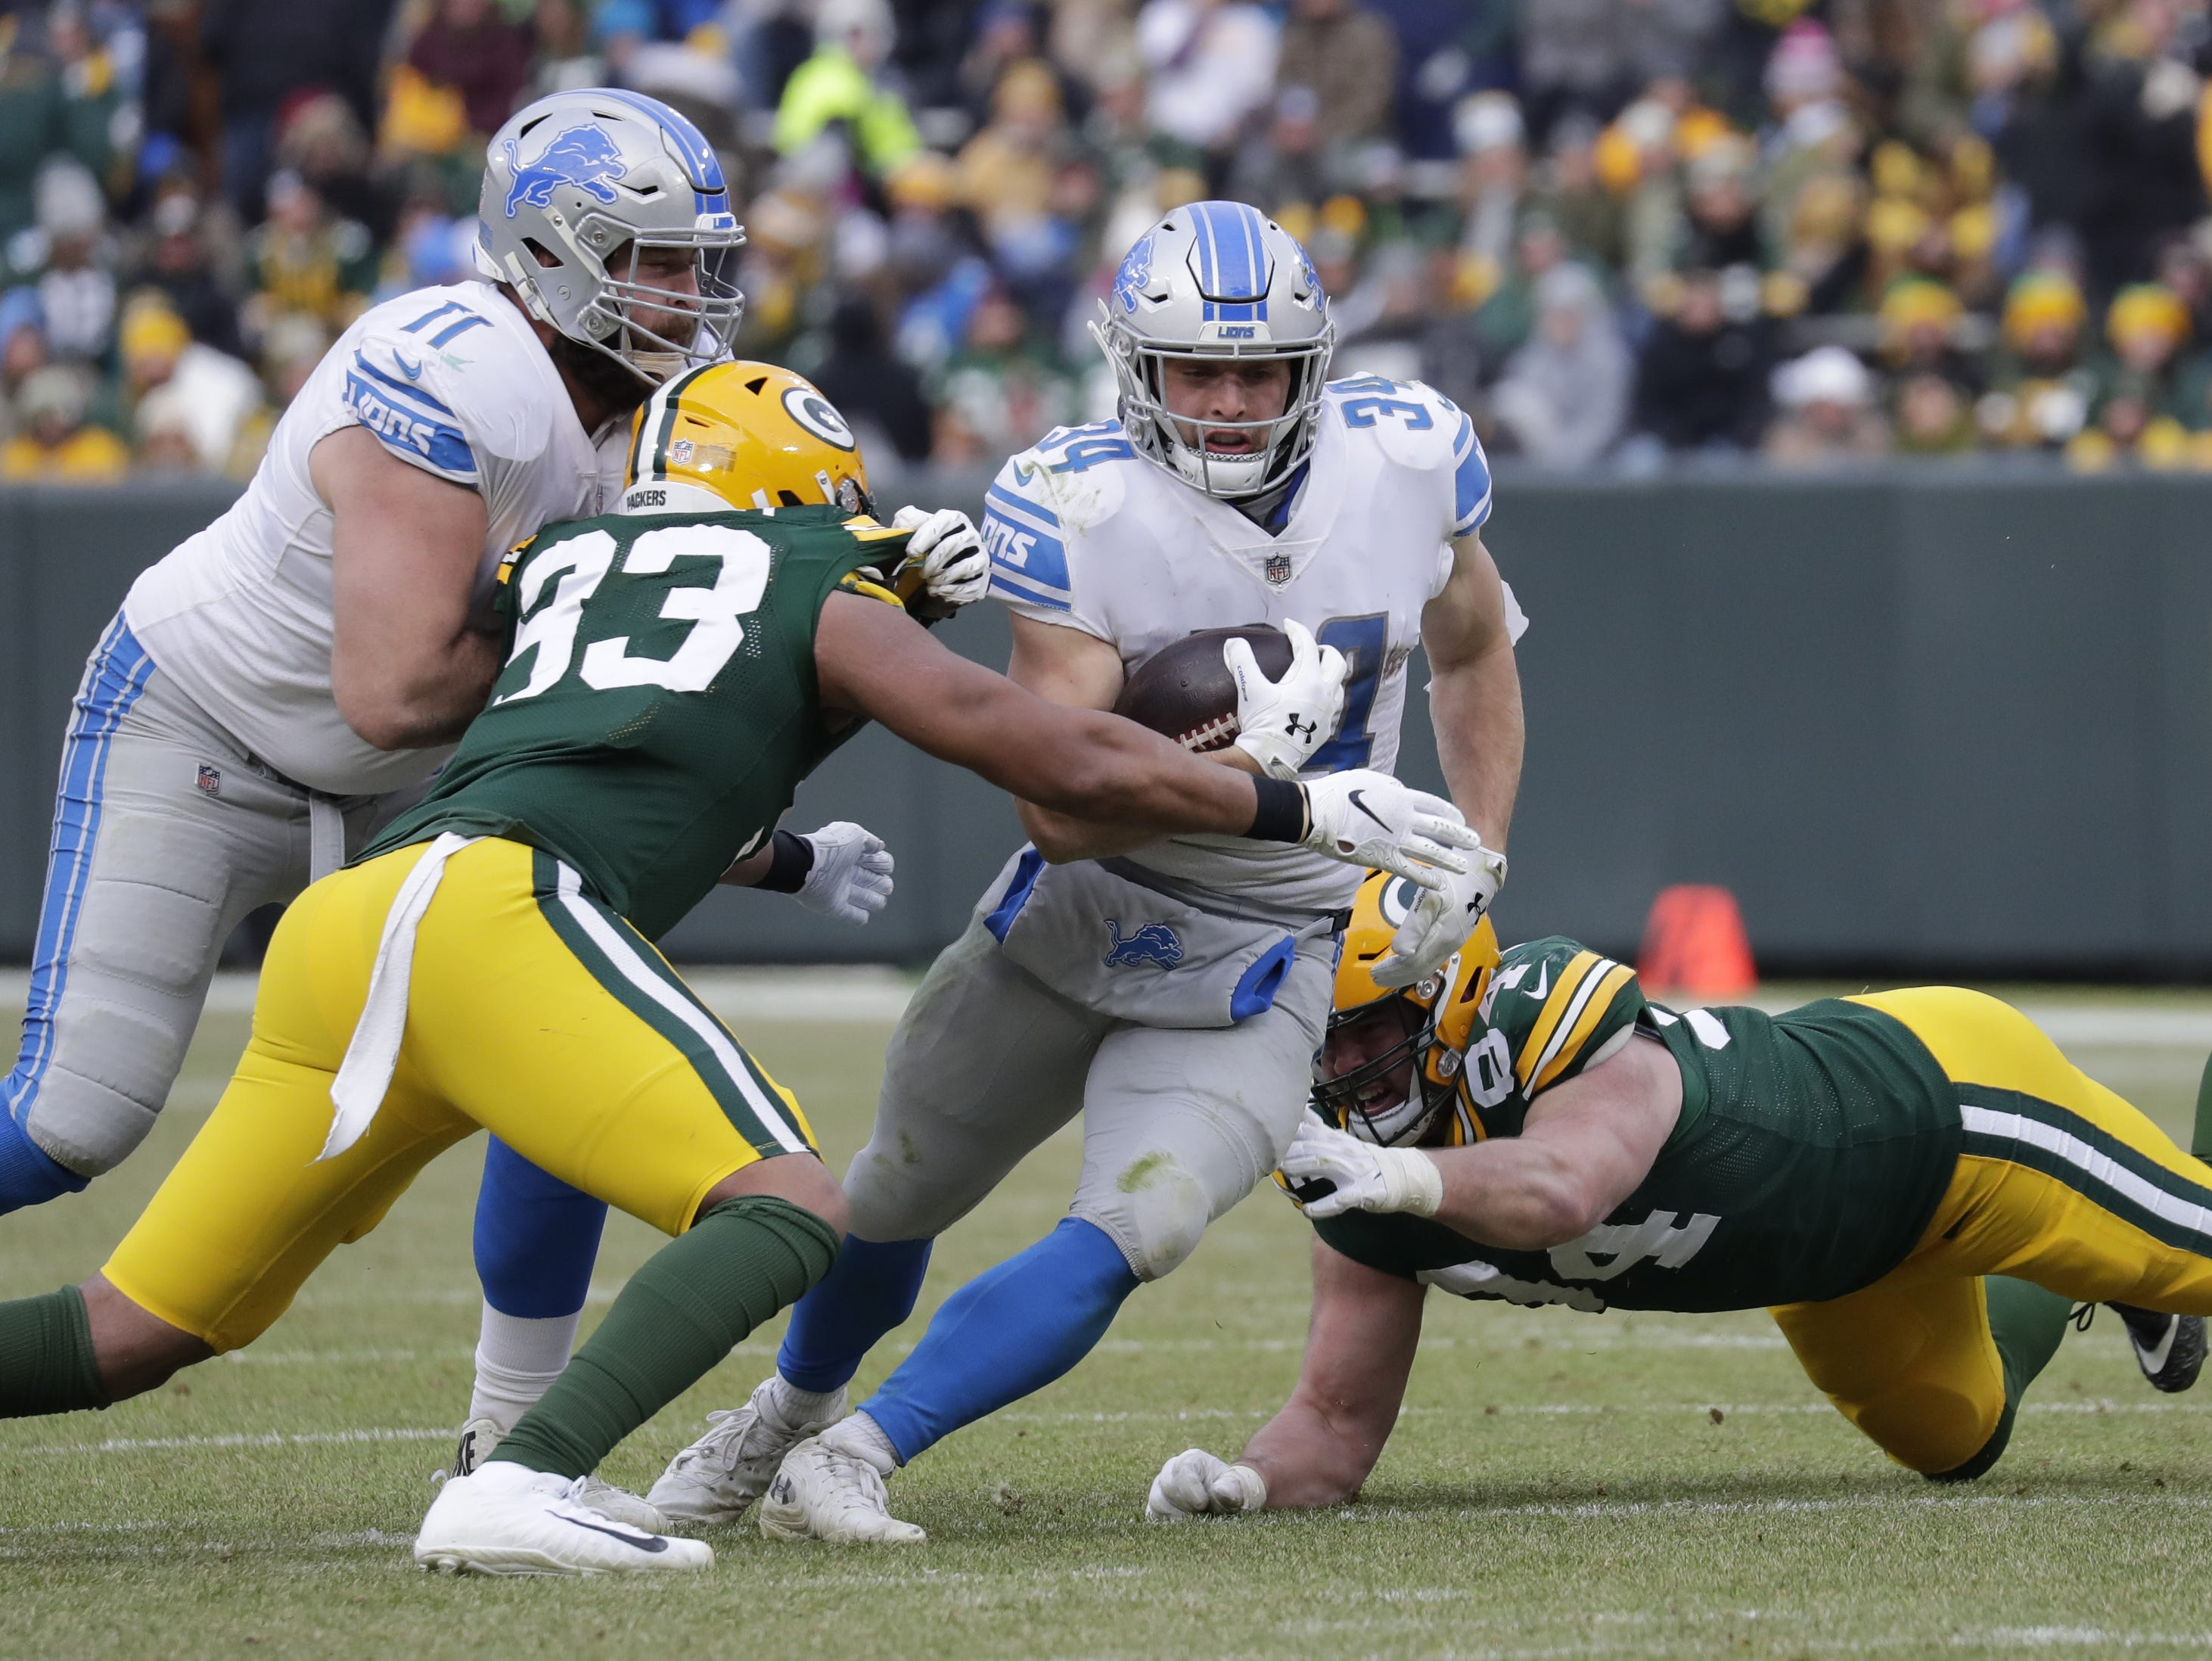 Detroit Lions running back Zach Zenner (34) runs against Green Bay Packers linebacker Reggie Gilbert (93) and defensive end Dean Lowry (94) in the fourth quarter Sunday, December 30, 2018, at Lambeau Field in Green Bay, Wis.  Dan Powers/USA TODAY NETWORK-Wisconsin